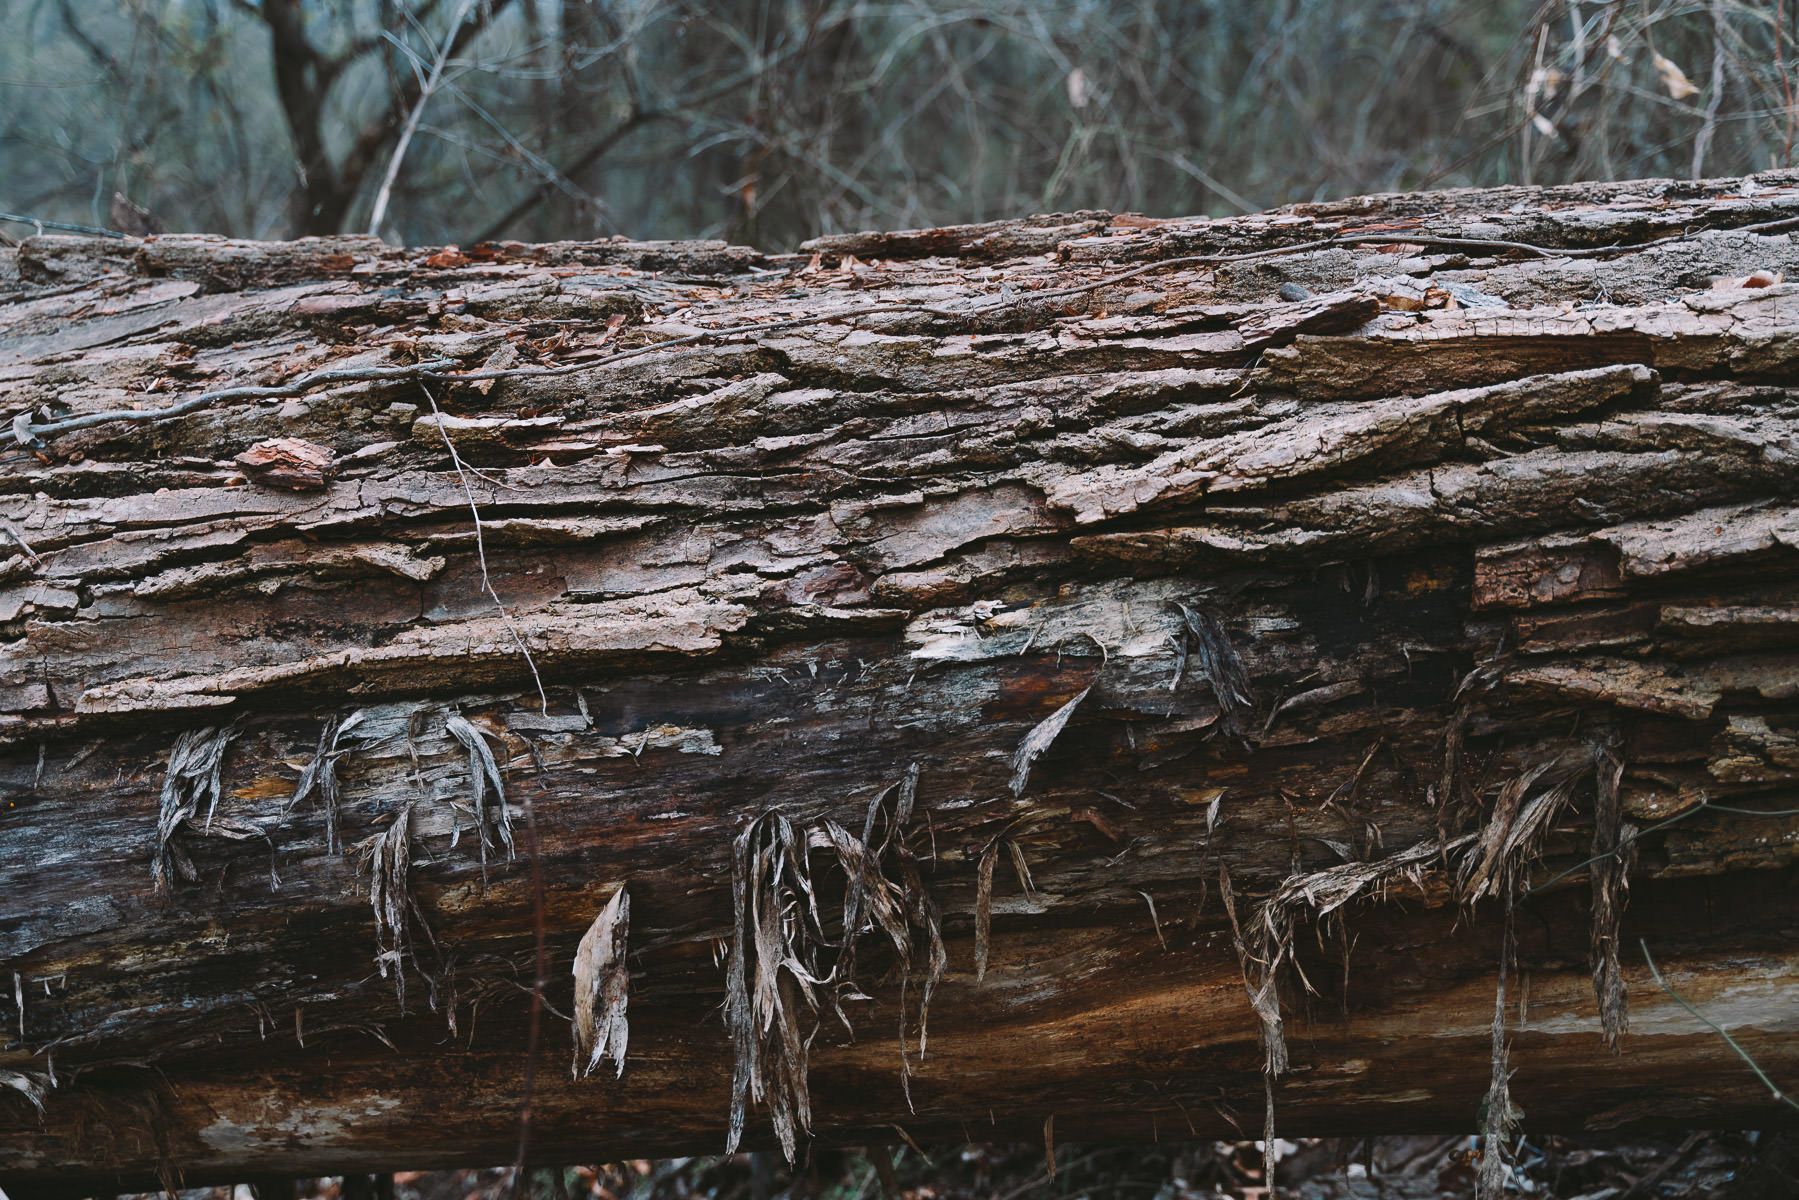 Detail of a fallen tree at the Lewisville Lake Environmental Learning Area, Texas.